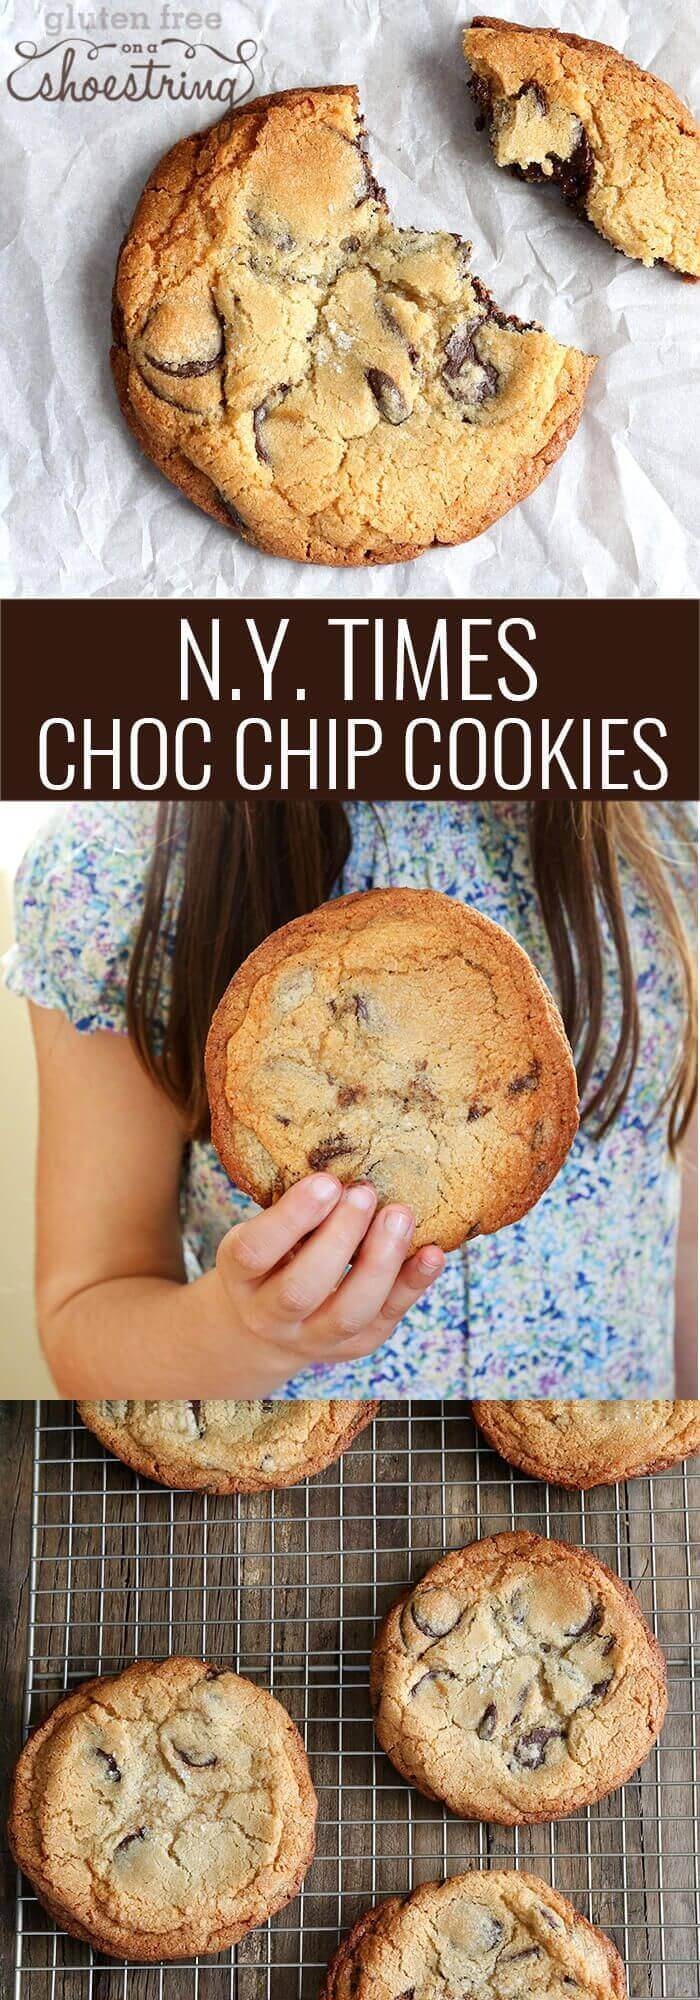 Gluten-Free New York Times Chocolate Chip Cookies